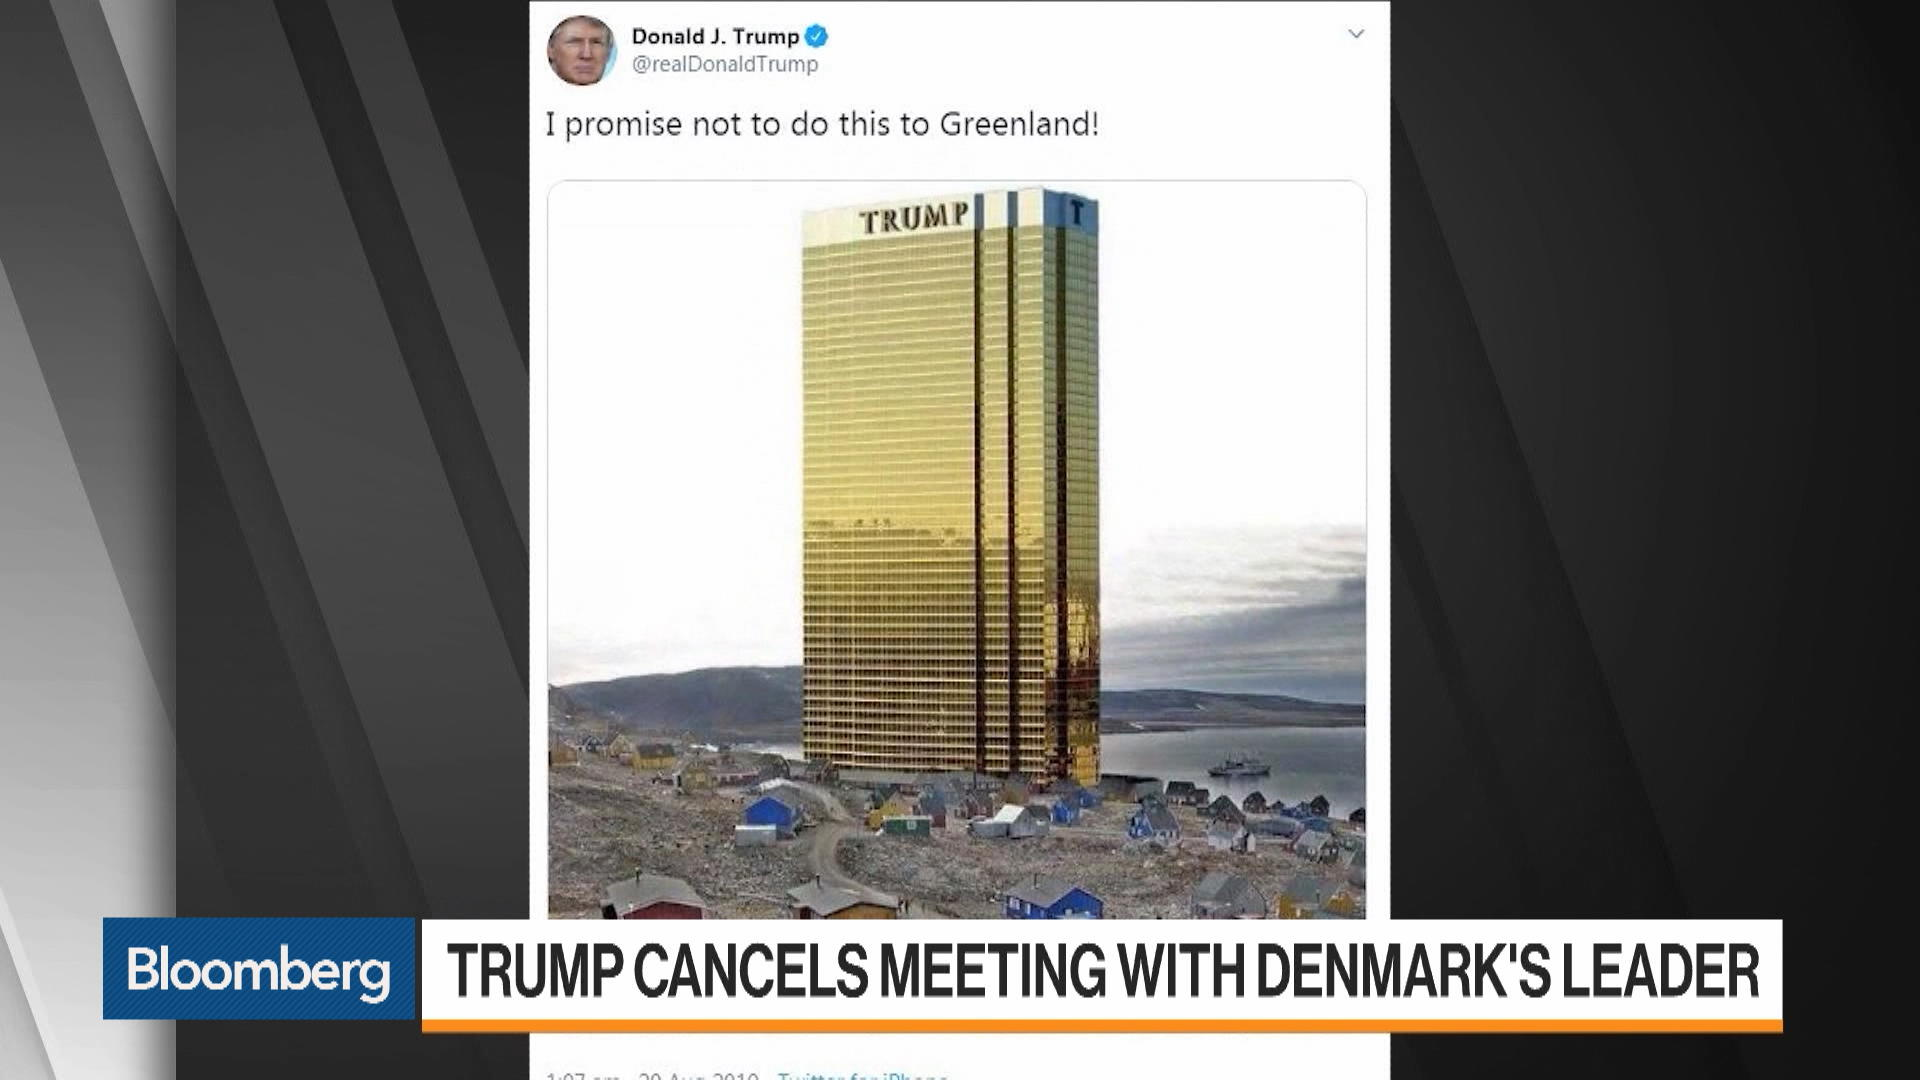 Trump Cancels Meeting With Denmark's Leader